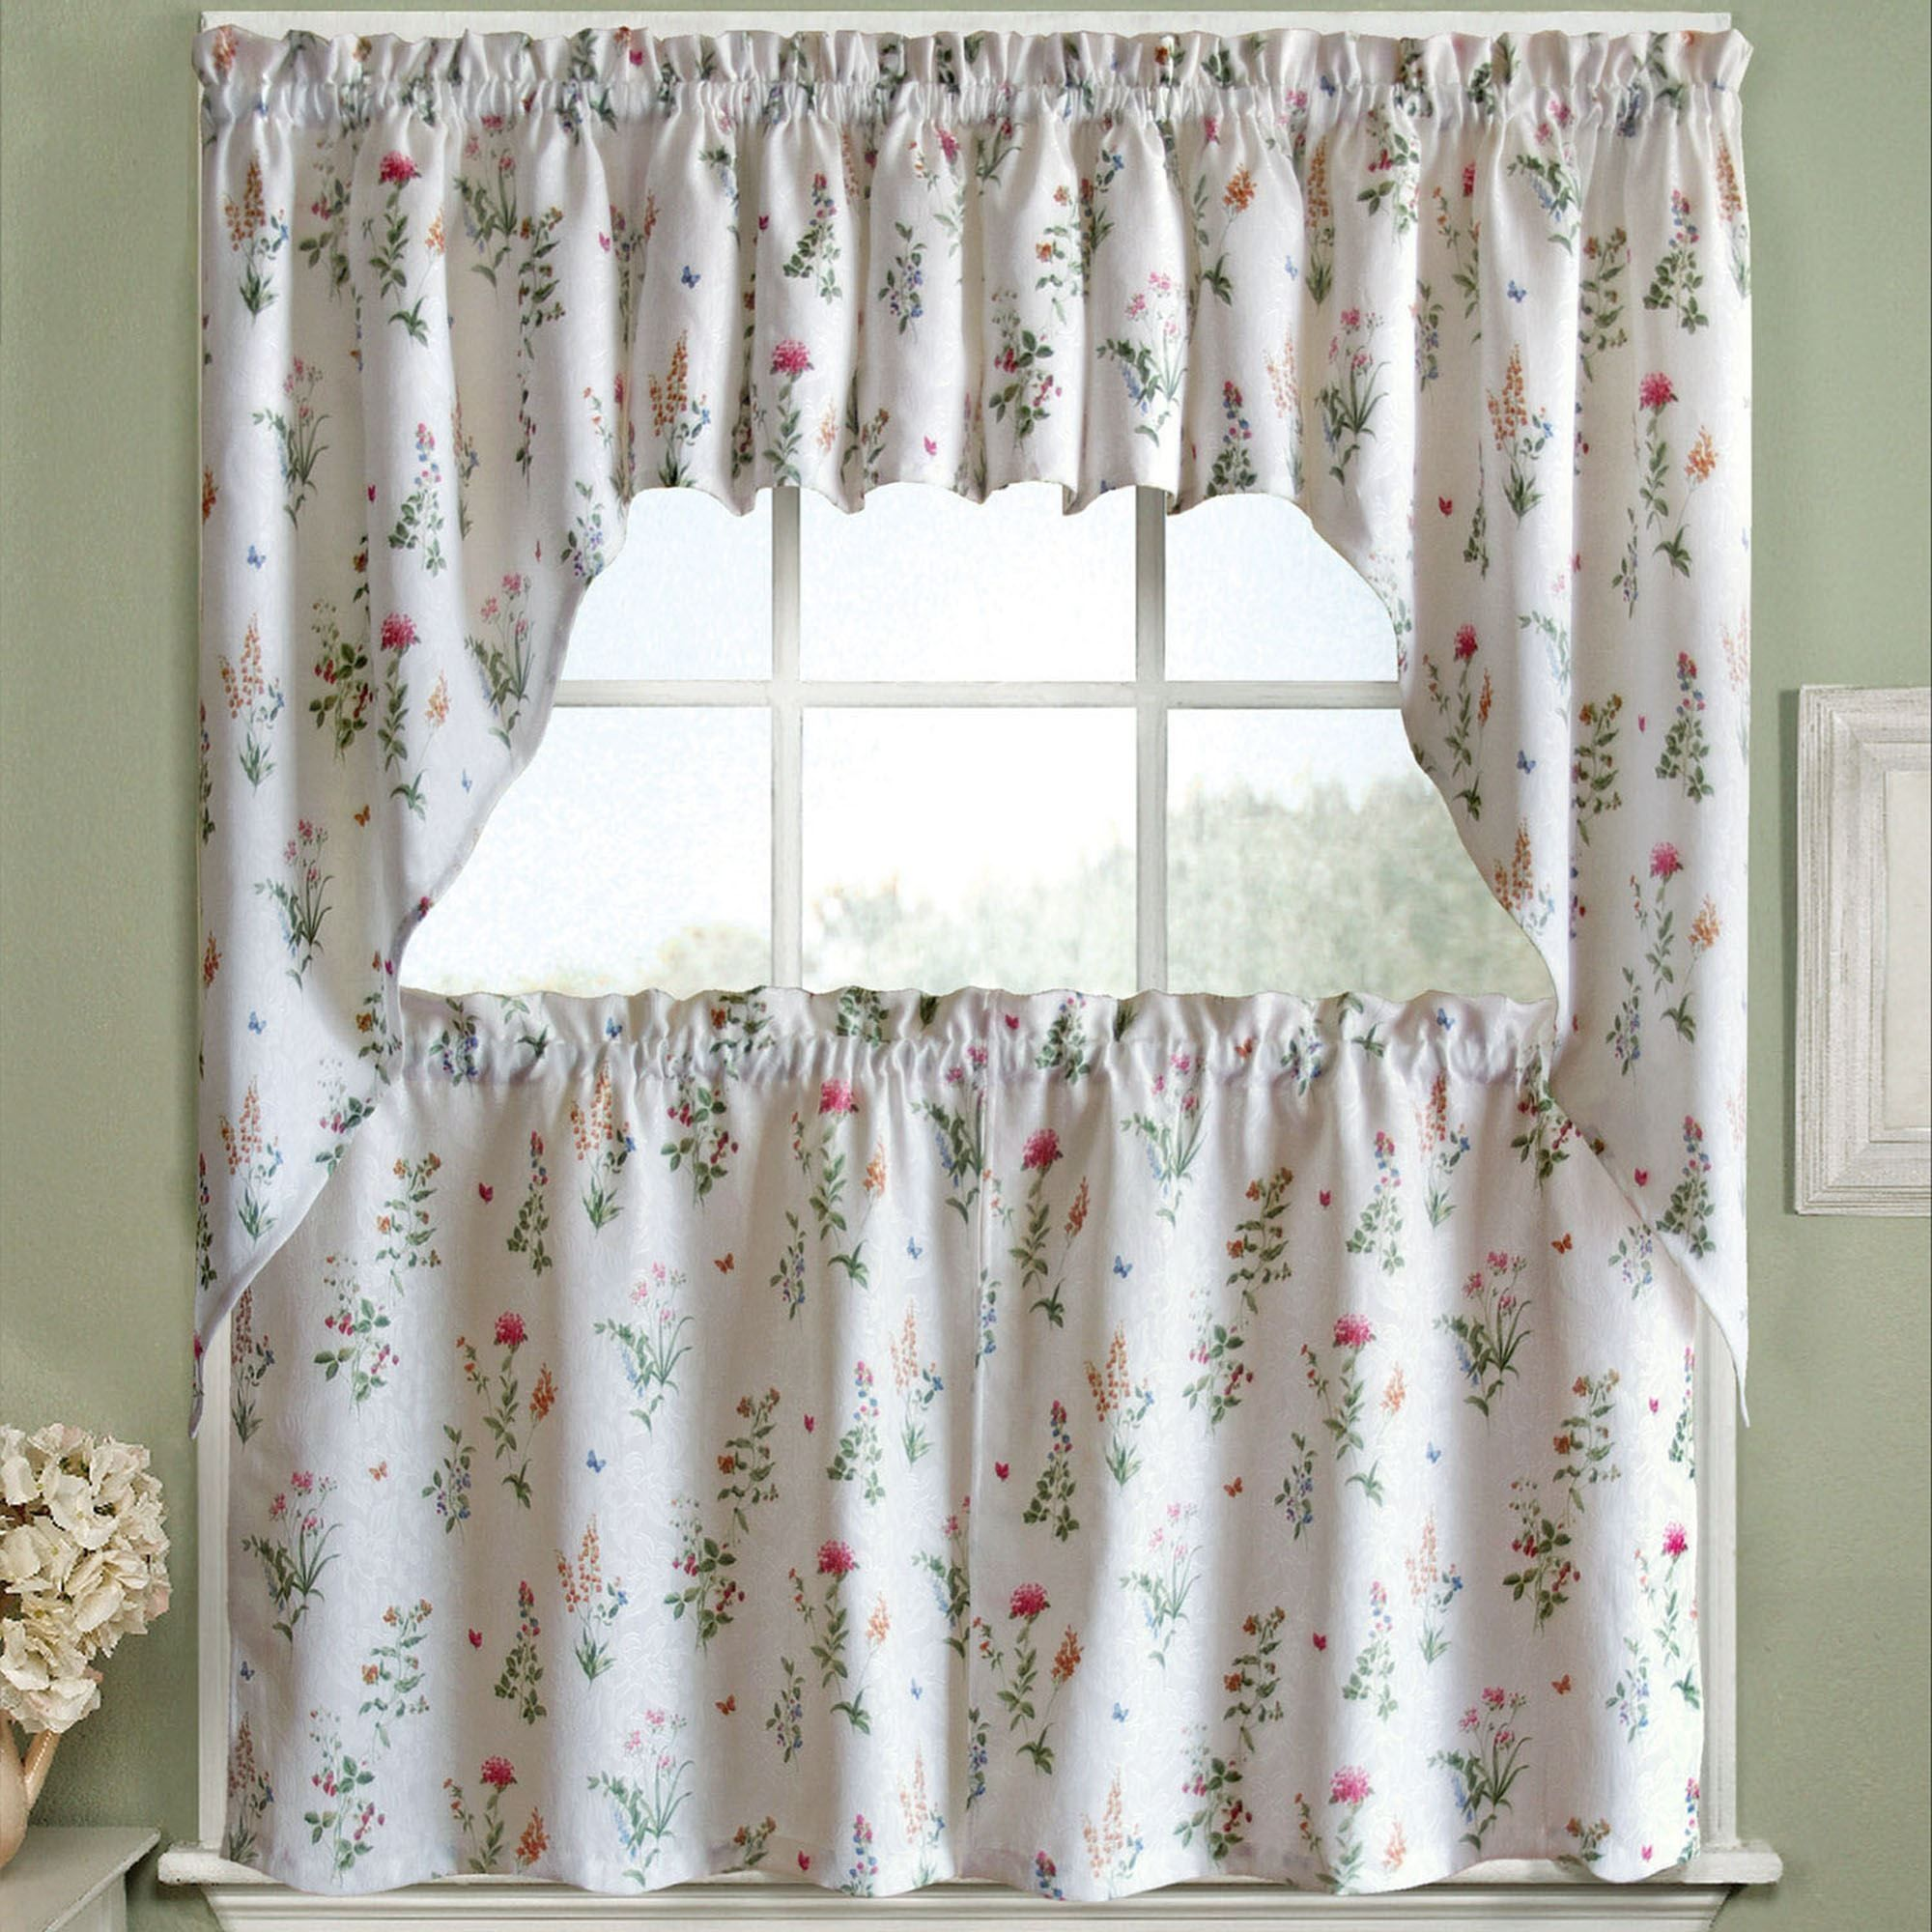 English Garden Floral Jacquard Kitchen Curtains 24 Inch, 36 Inch Kitchen  Curtains, Set Of 38 Inch Swag Pair Or 12 Inch Valance White